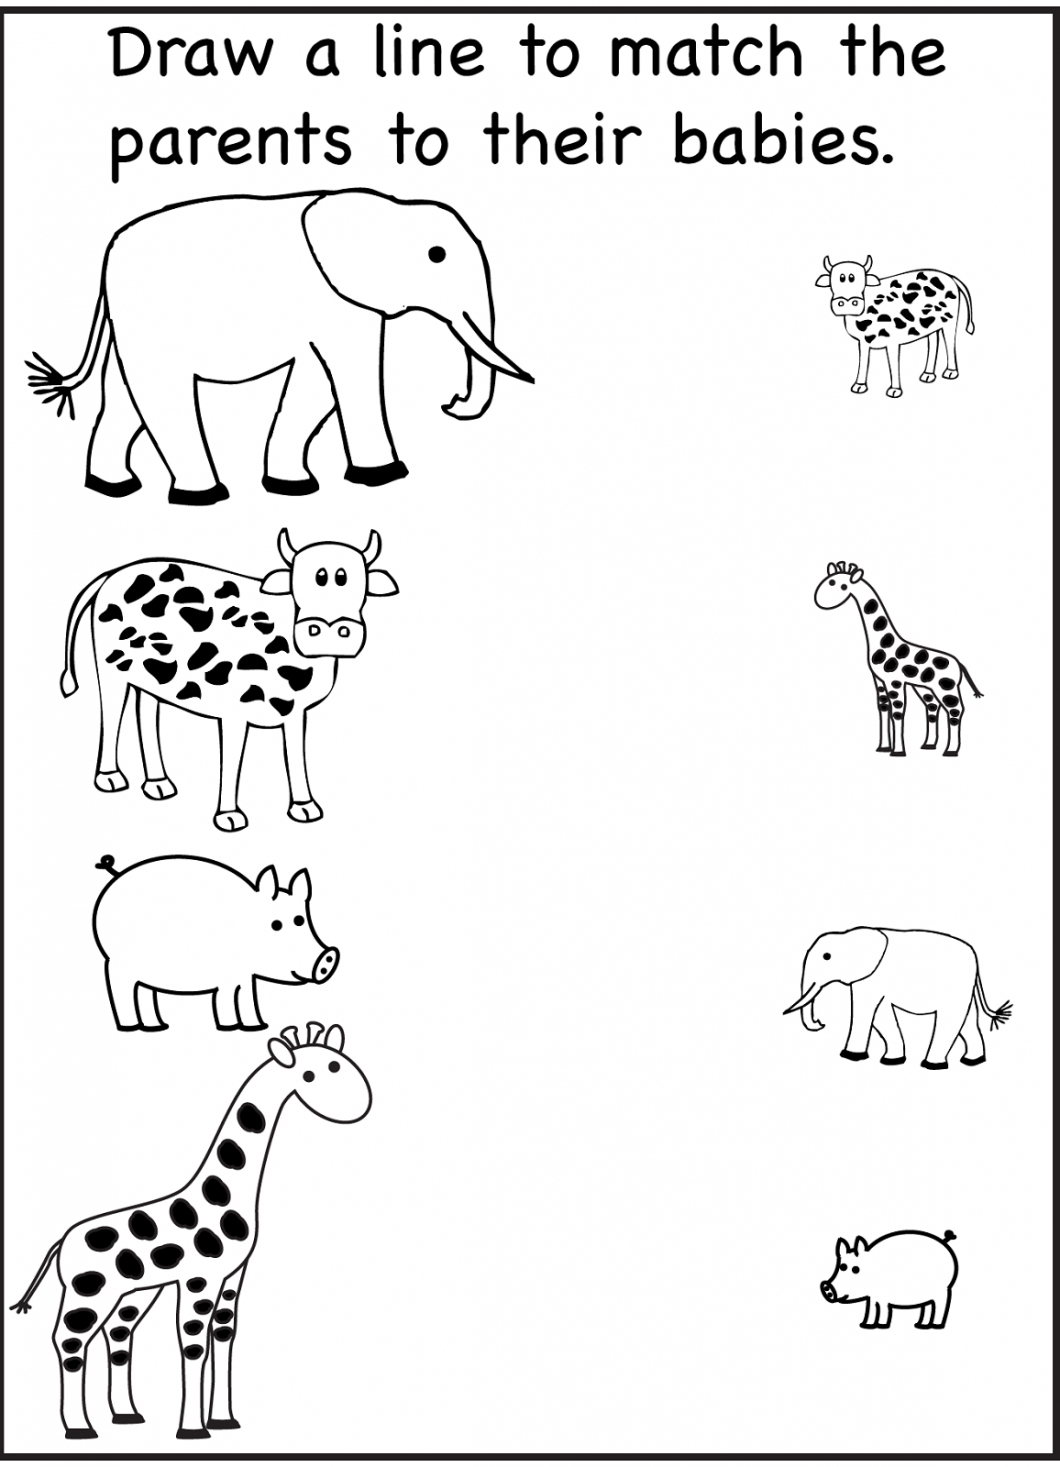 Free Printable Activity Sheets – With Activities For Preschoolers - Free Printable Games For Toddlers